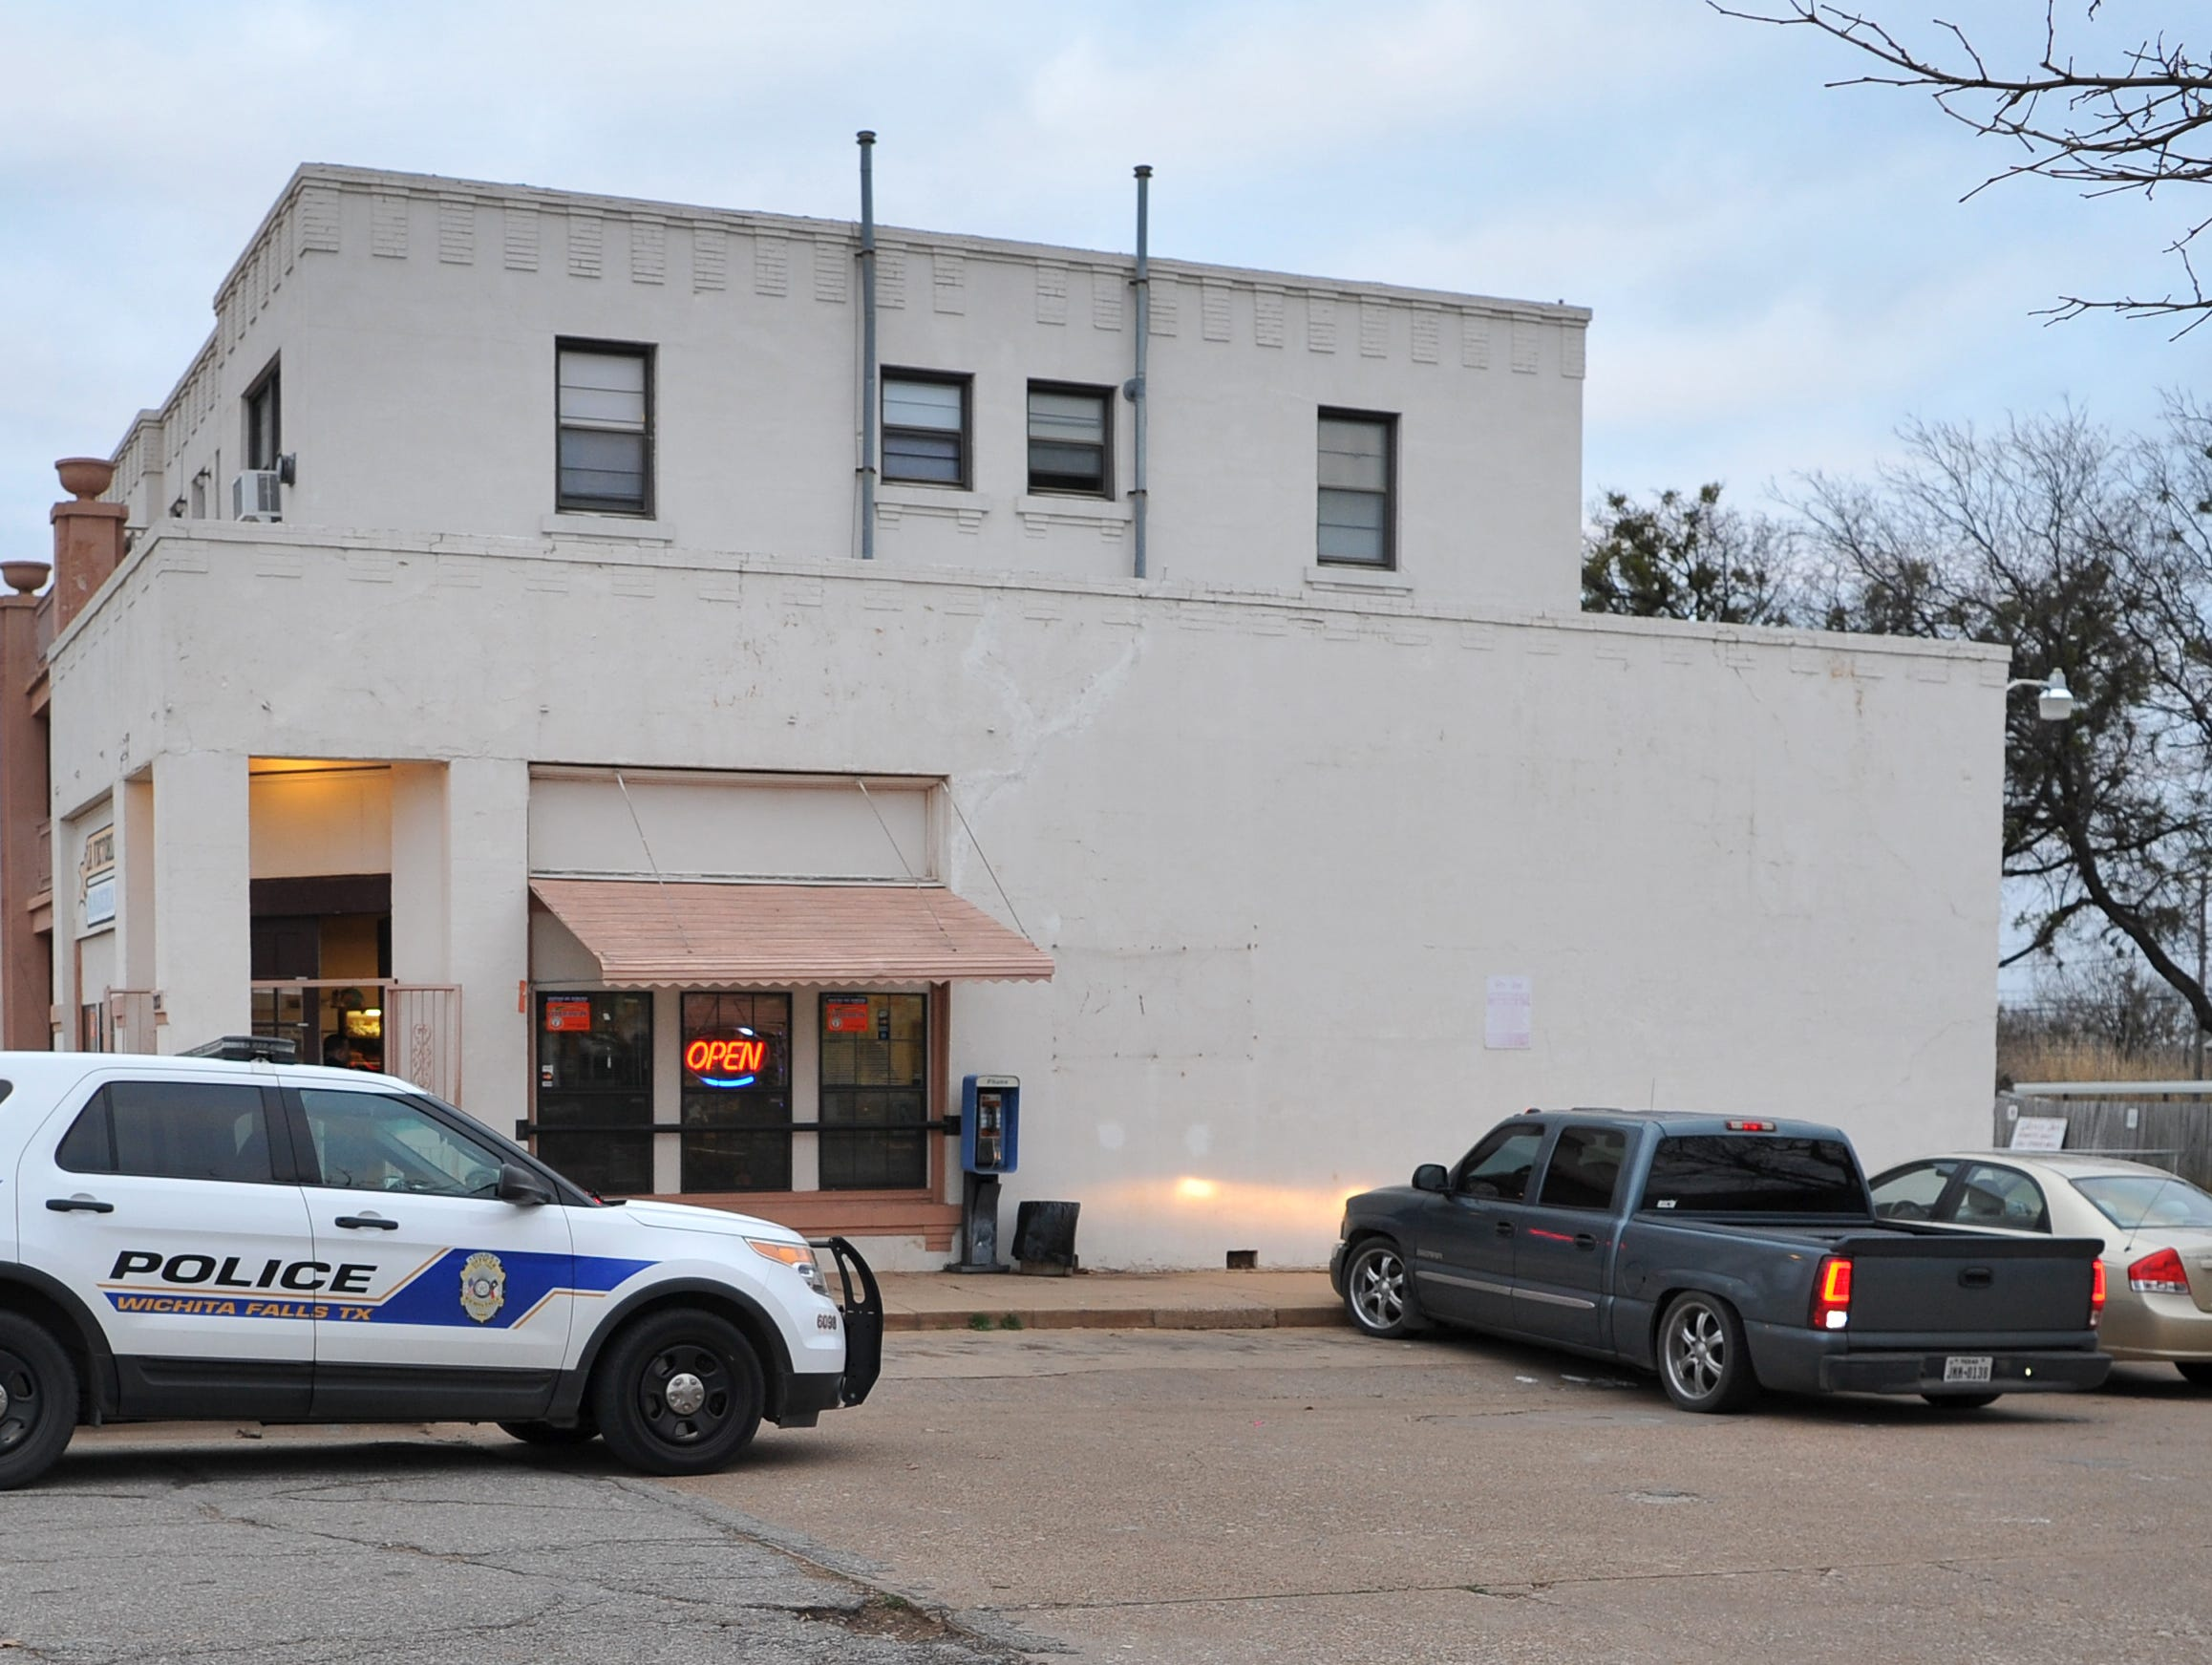 Wichita Falls police work the scene of an aggravated robbery with a weapon at the La Victoria Bakery locate in 1200 block of 11th Street, Tuesday afternoon.